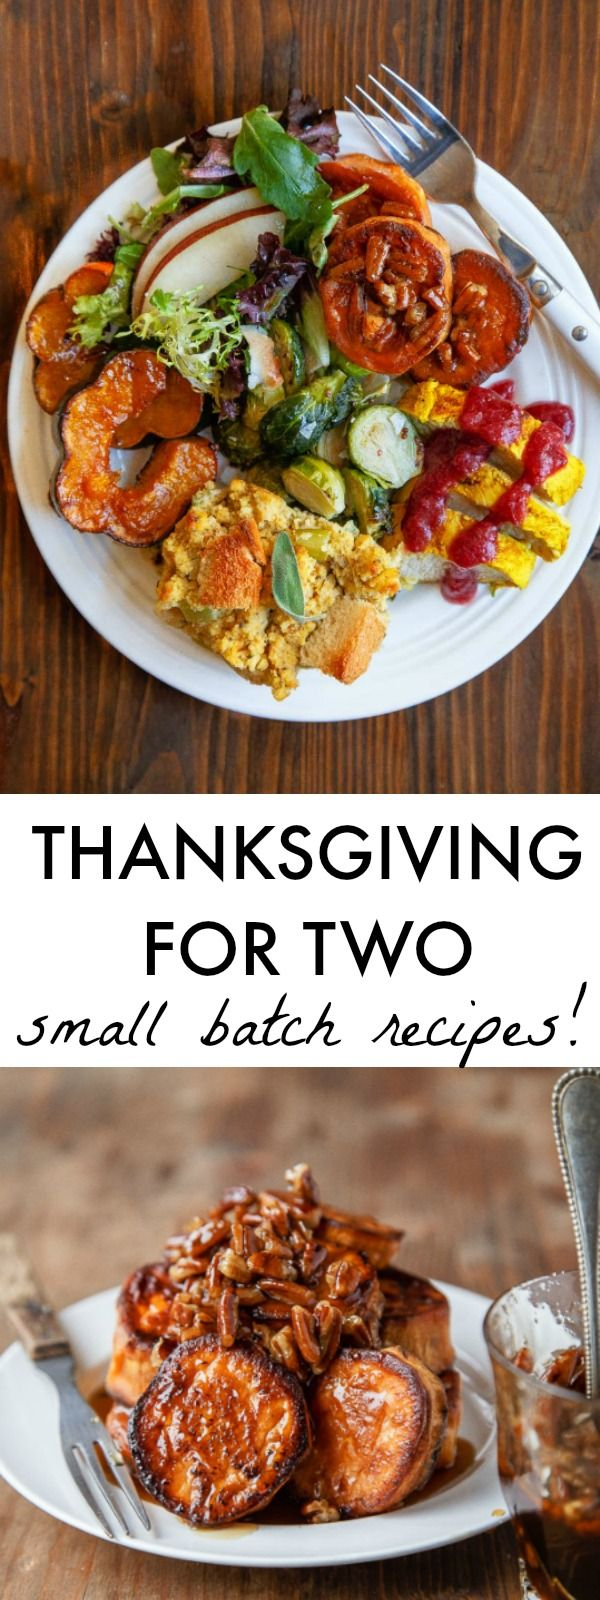 Just cooking for two on Thanksgiving? Small scale recipes of your favorite Thanksgiving favorites, including dessert for two. A small Thanksgiving celebration.